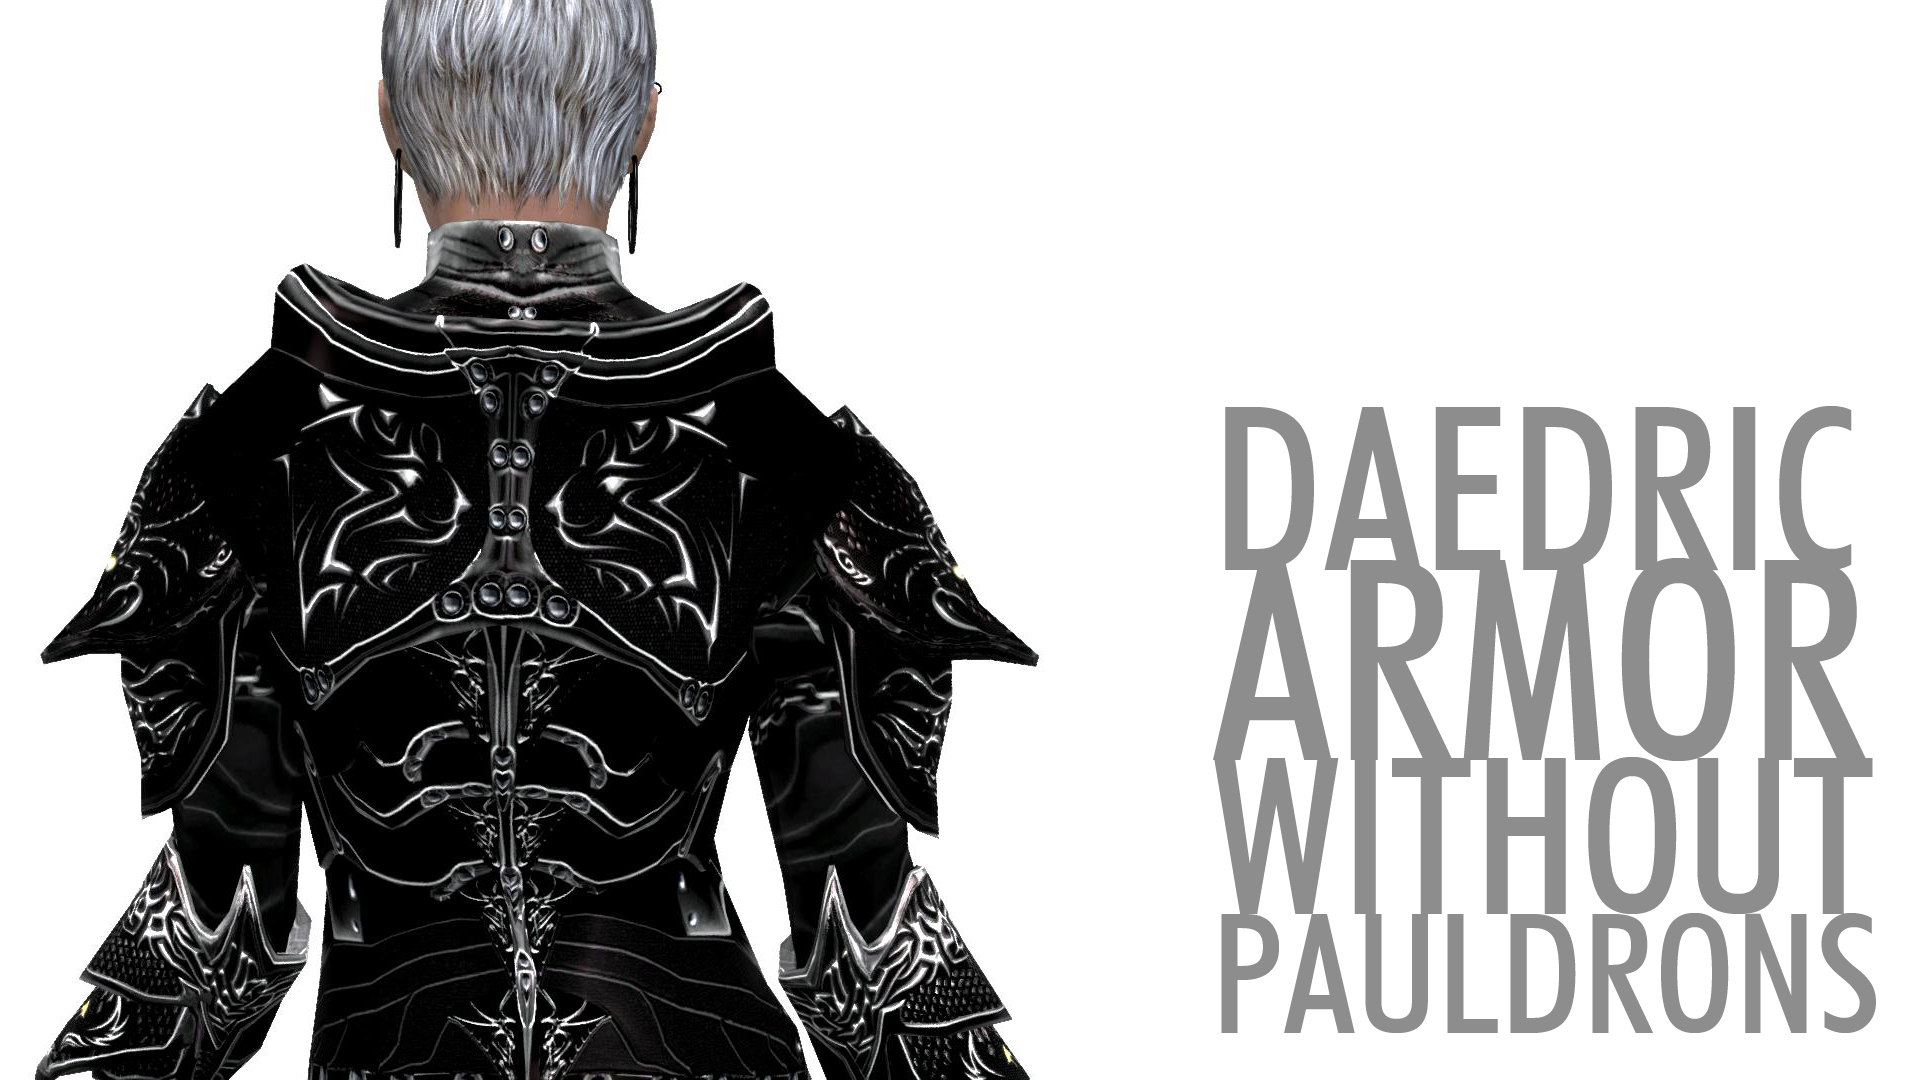 Daedric Armor - without pauldrons 01.jpg